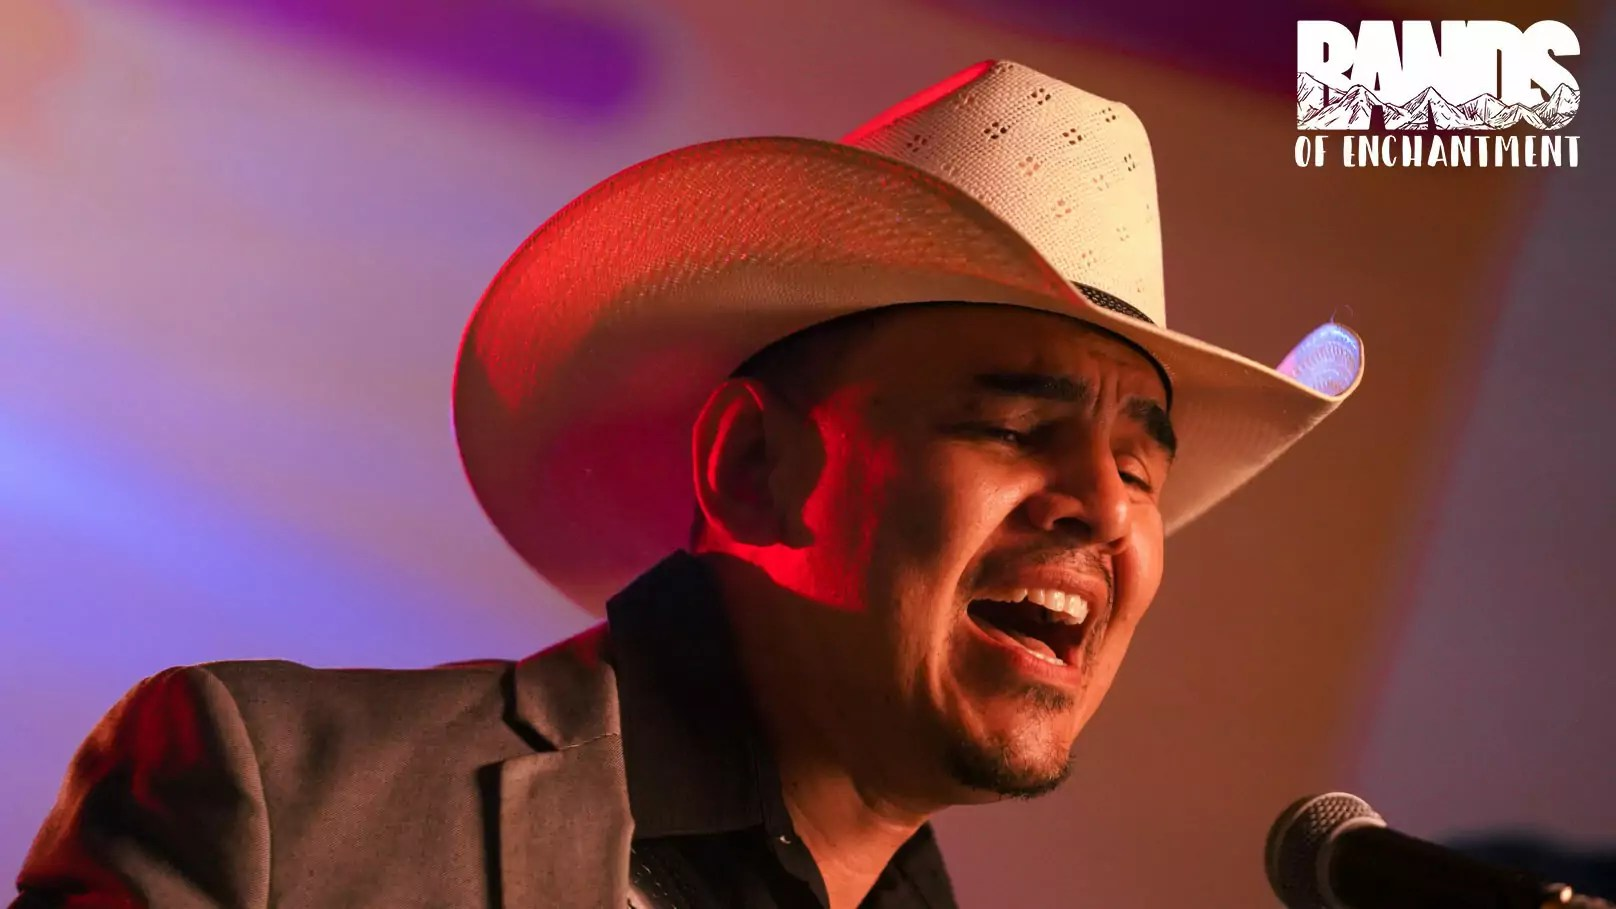 A man with a cowboy hat sings into a microphone